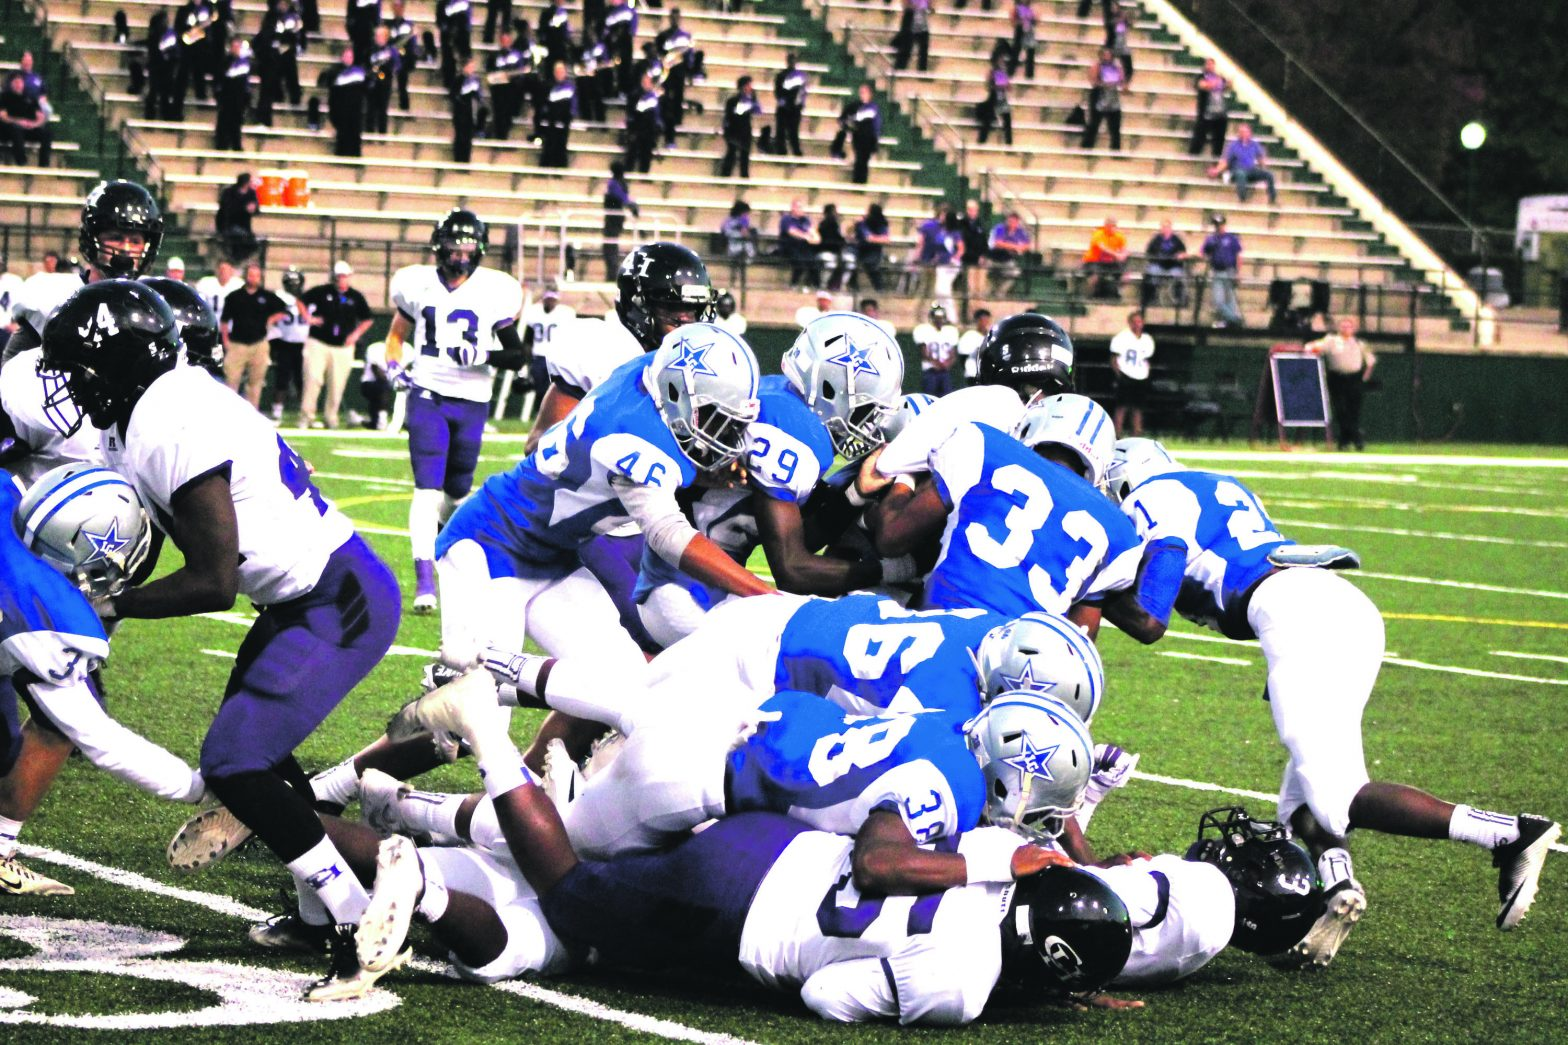 Grangers Pour Out Their Hearts  In 26-24 Setback To Chapel Hill